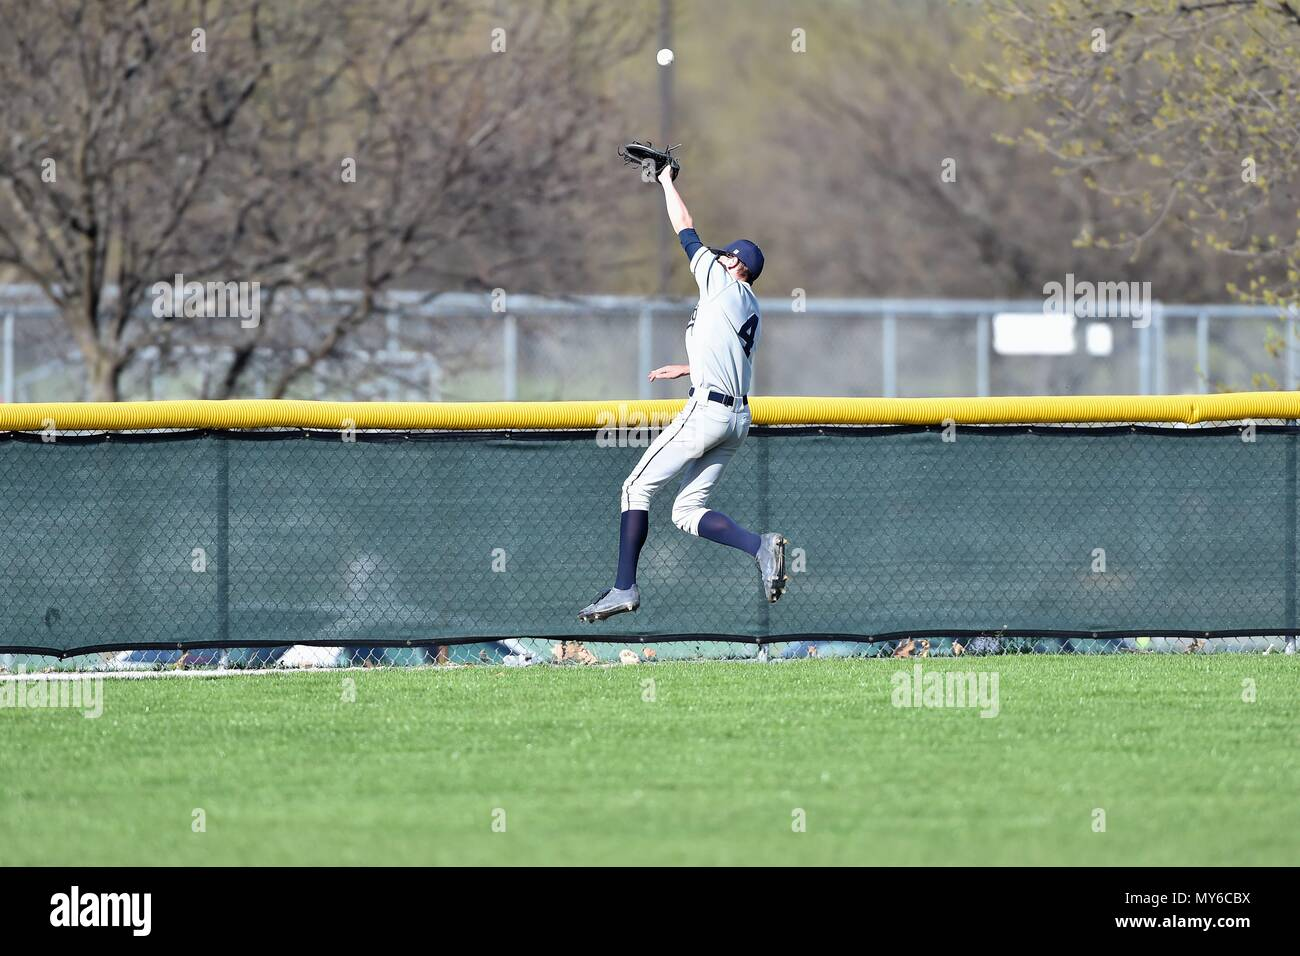 Center fielder making a leaping effort for a drive that eluded his grasp and fell for a triple. USA. - Stock Image